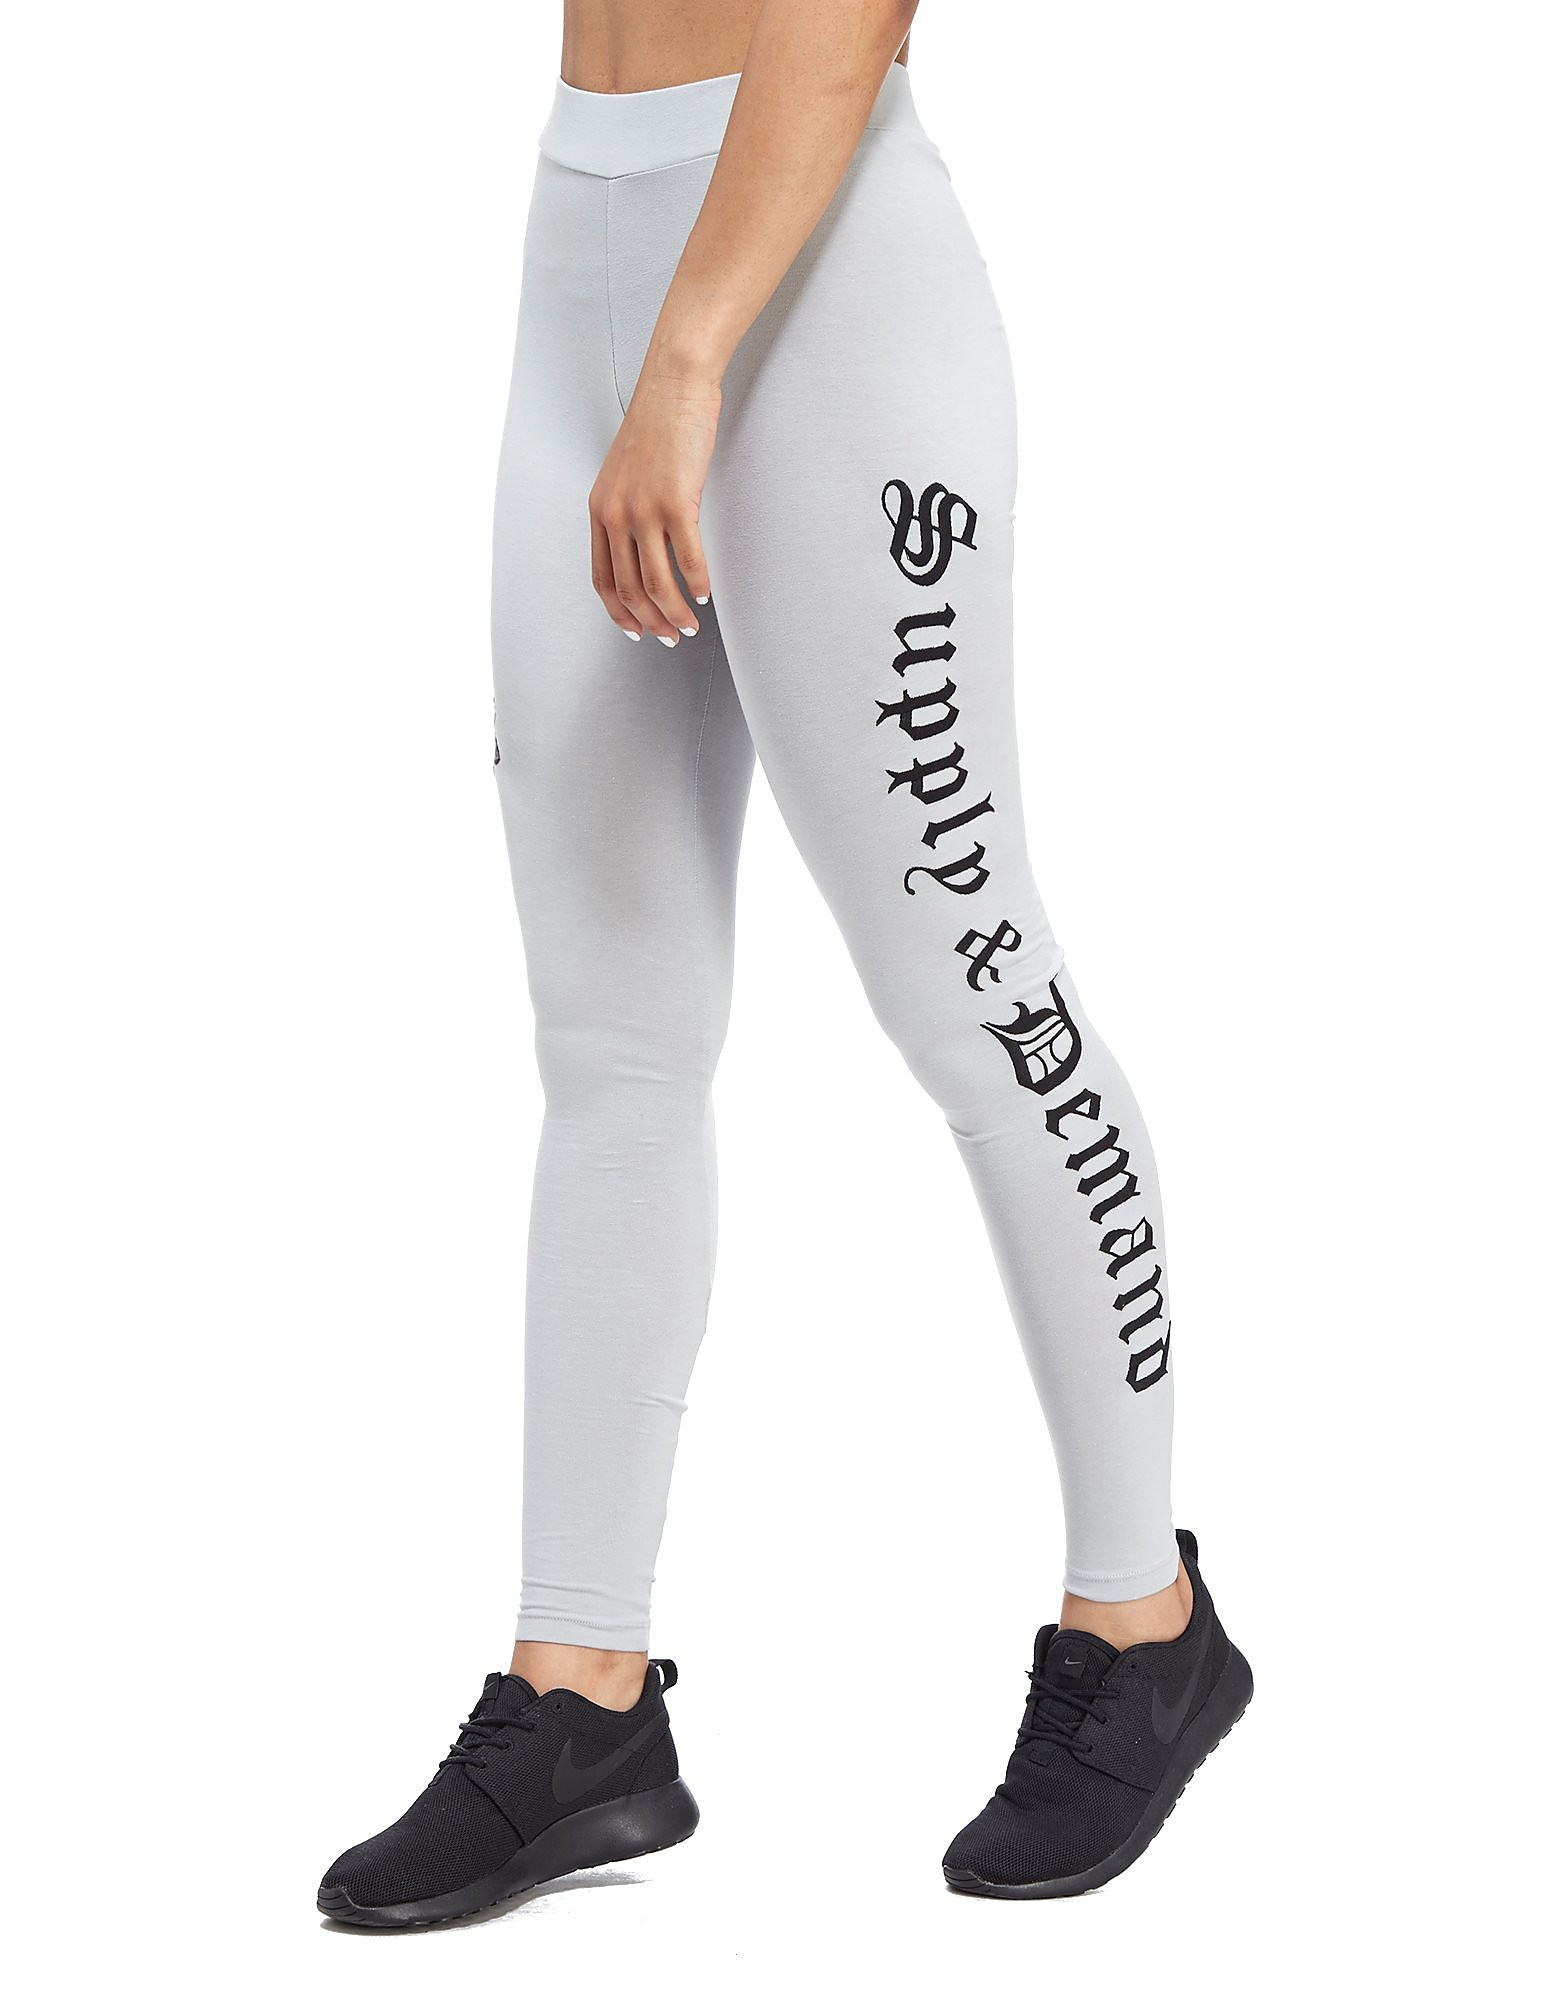 Supply & Demand Flower Emblem Leggings